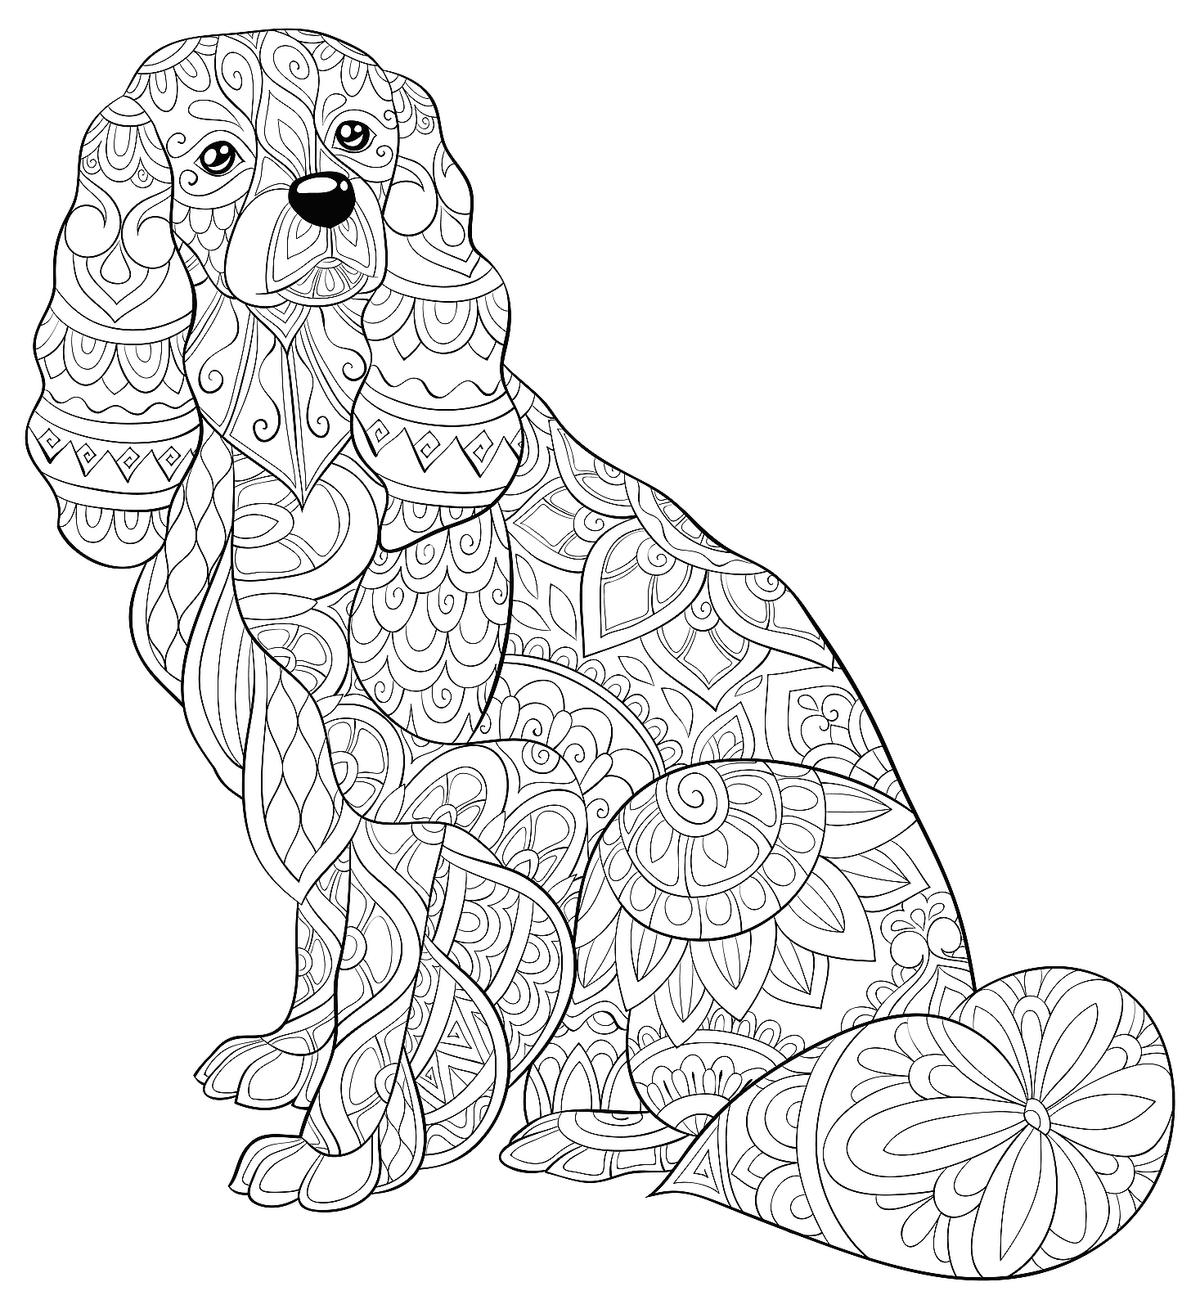 colour in pictures of dogs puppy coloring pages best coloring pages for kids dogs colour in of pictures